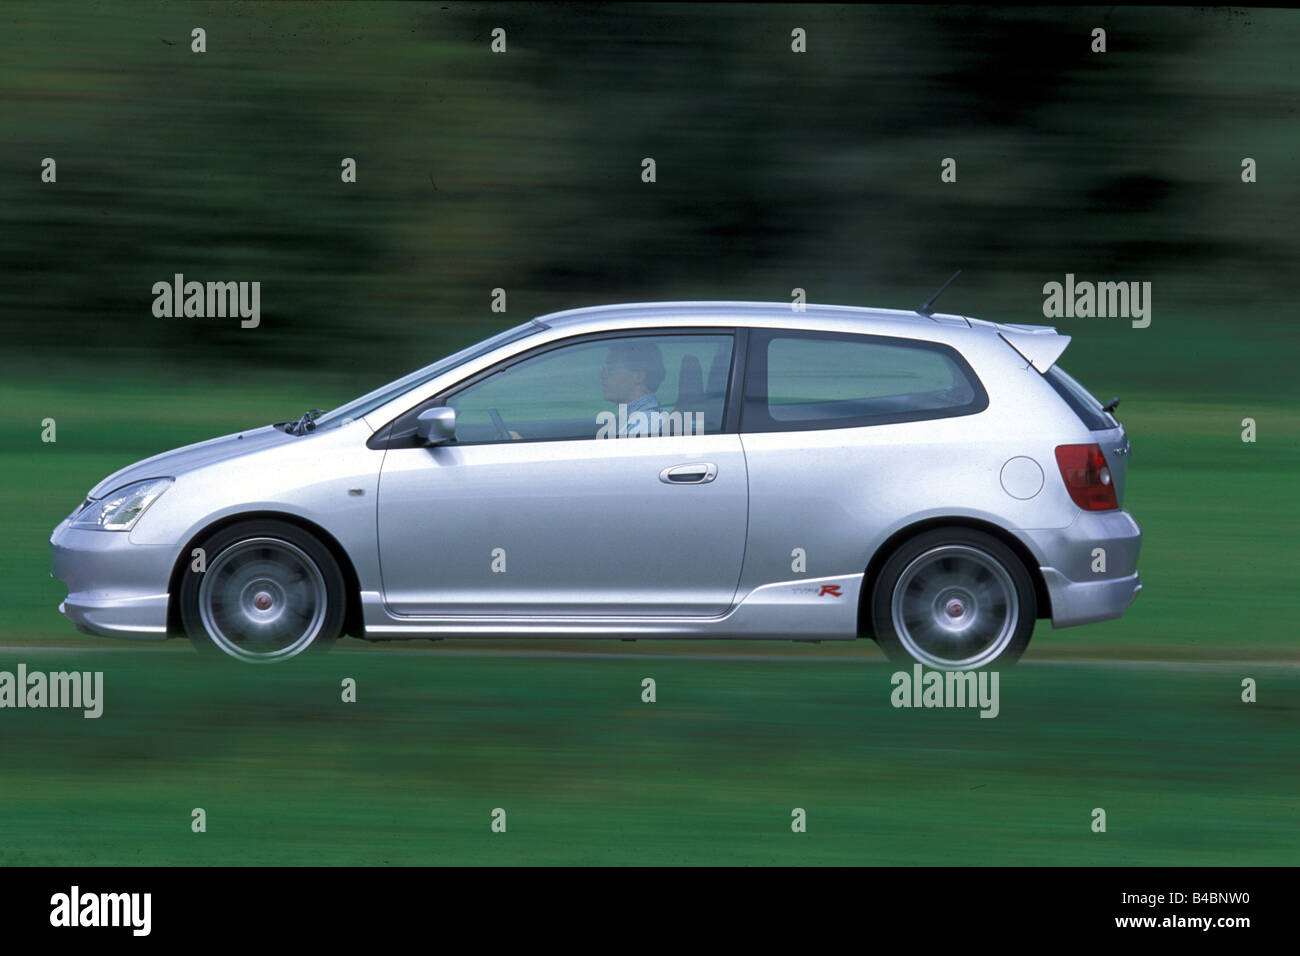 Car, Honda Civic 2.0i Type R, Model Year 2001 , Silver